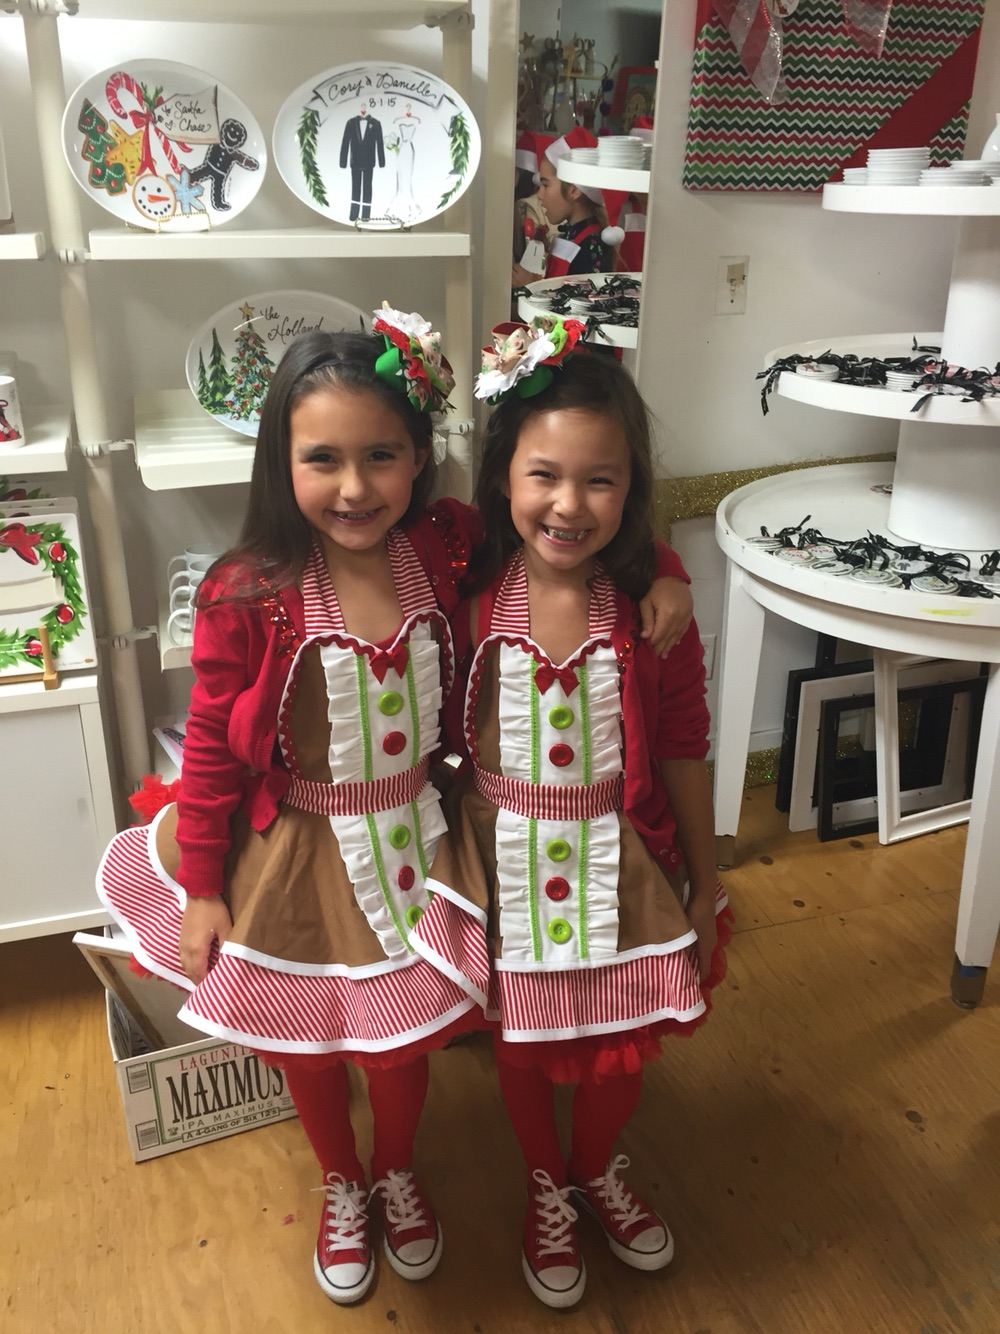 Christmas Apron Fabric Inspiration by Bambino Amore - The Apron Makers